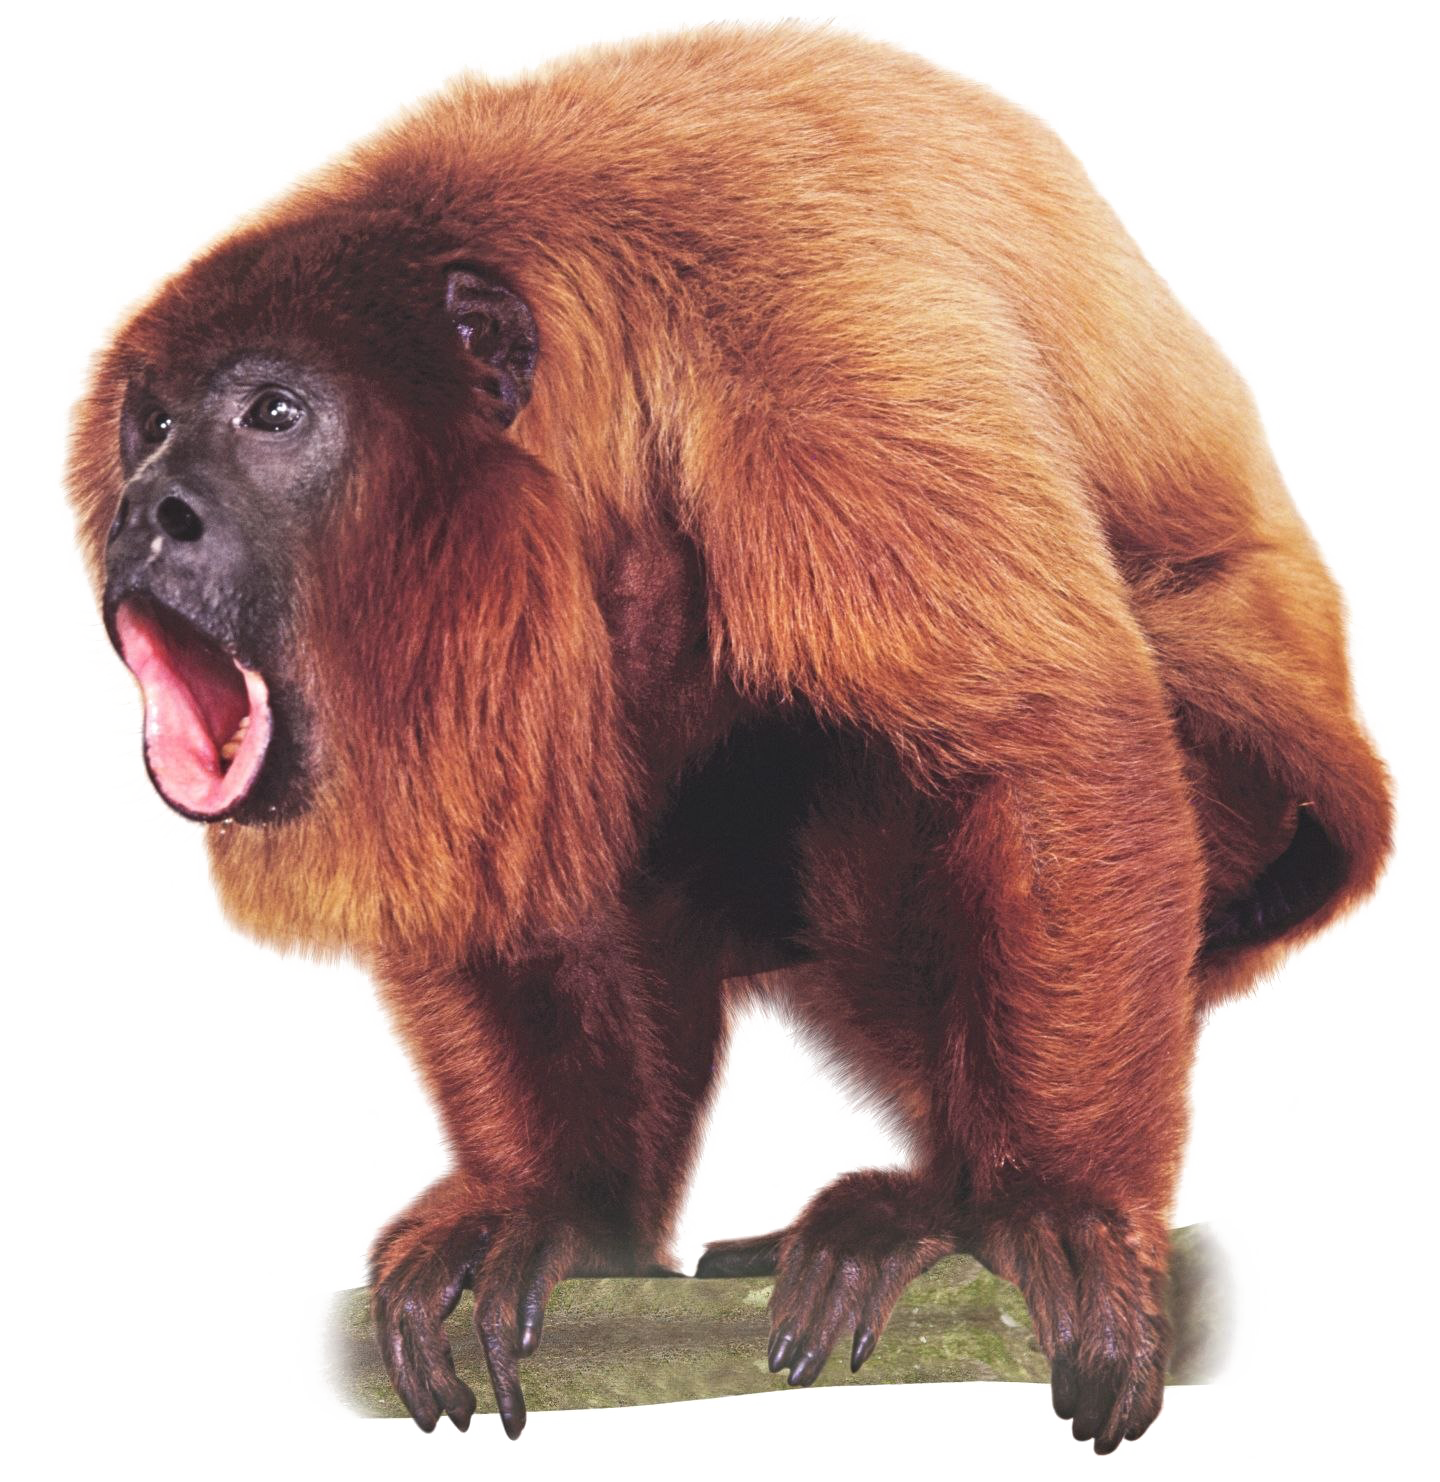 Image with transparent background. Monkey png images clipart royalty free stock